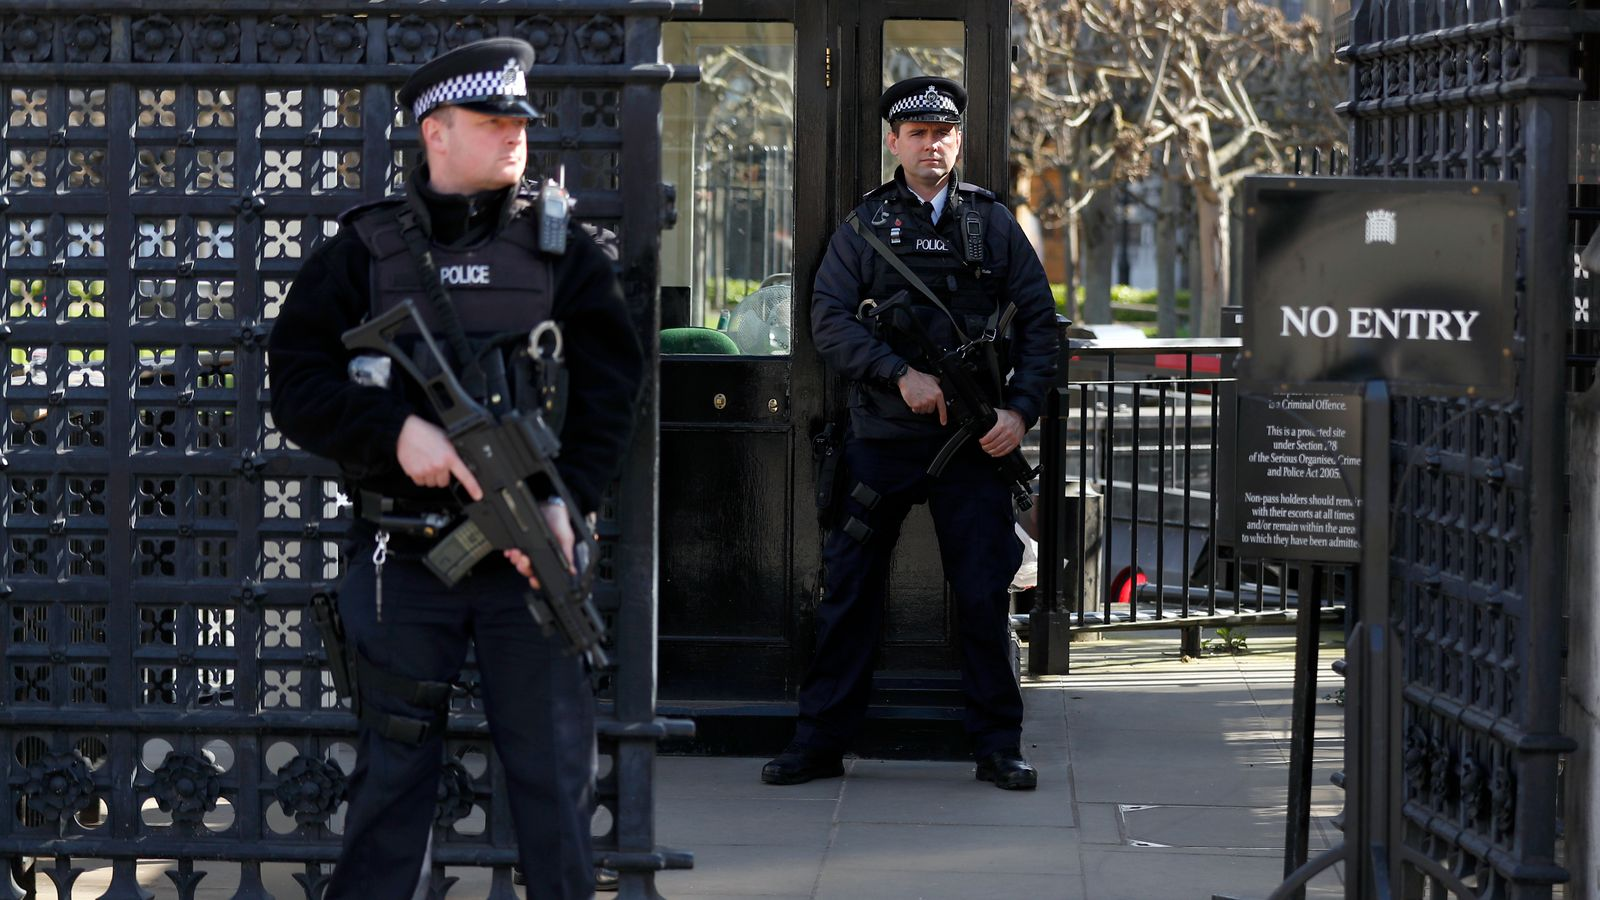 Armed police officers stand at the Carriage Gates entrance to the Houses of Parliament, following the attack in Westminster earlier in the week, in London, Britain March 25, 2017. REUTERS/Peter Nicholls